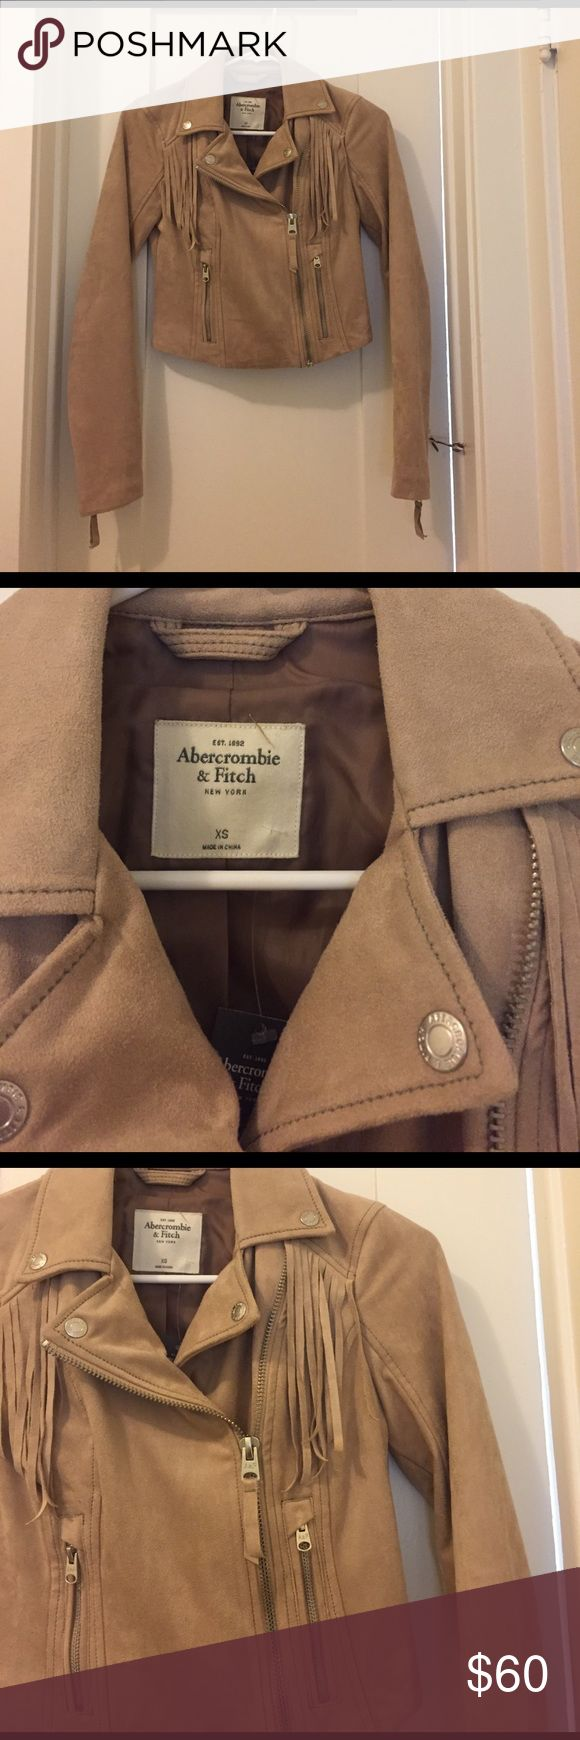 Abercrombie and Fitch suede jacket with fringe So cute! Brand new with tags!! Original price 148 Abercrombie & Fitch Jackets & Coats